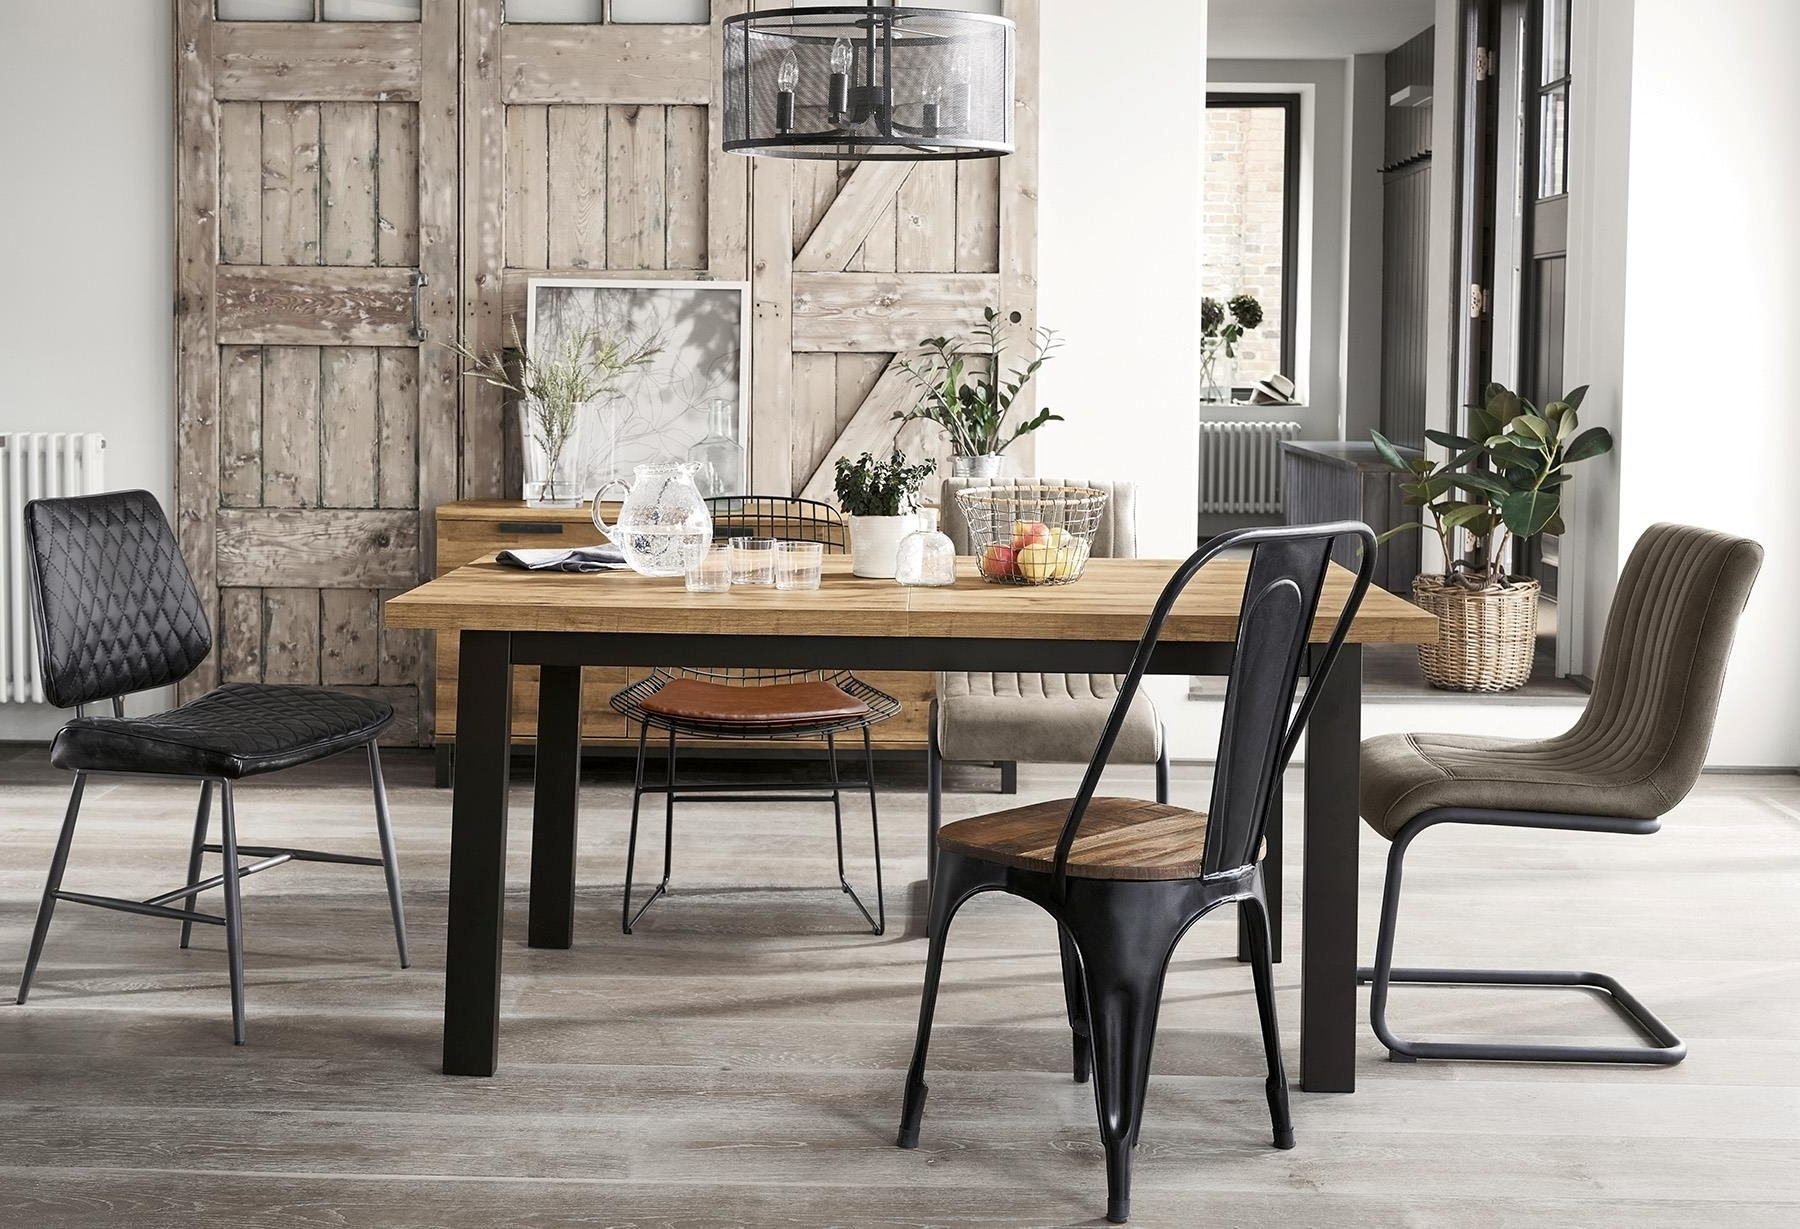 8 Seater Dining Tables And Chairs Throughout 2018 Buy Bronx 6 8 Seater Extending Dining Table From The Next Uk Online (View 14 of 25)